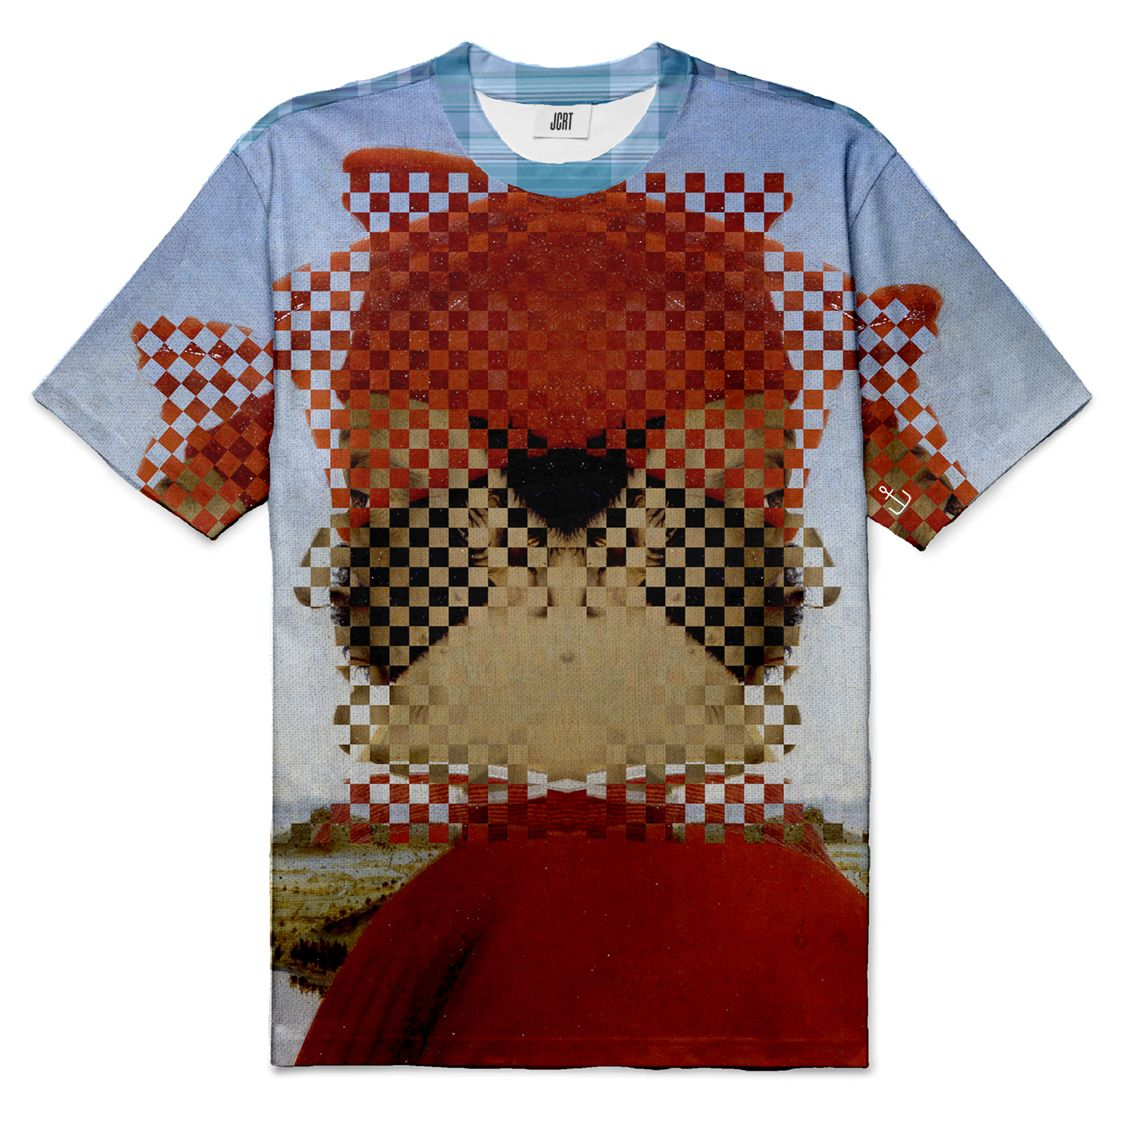 The Piero Della Francesca Exquisite Corpse T-Shirt